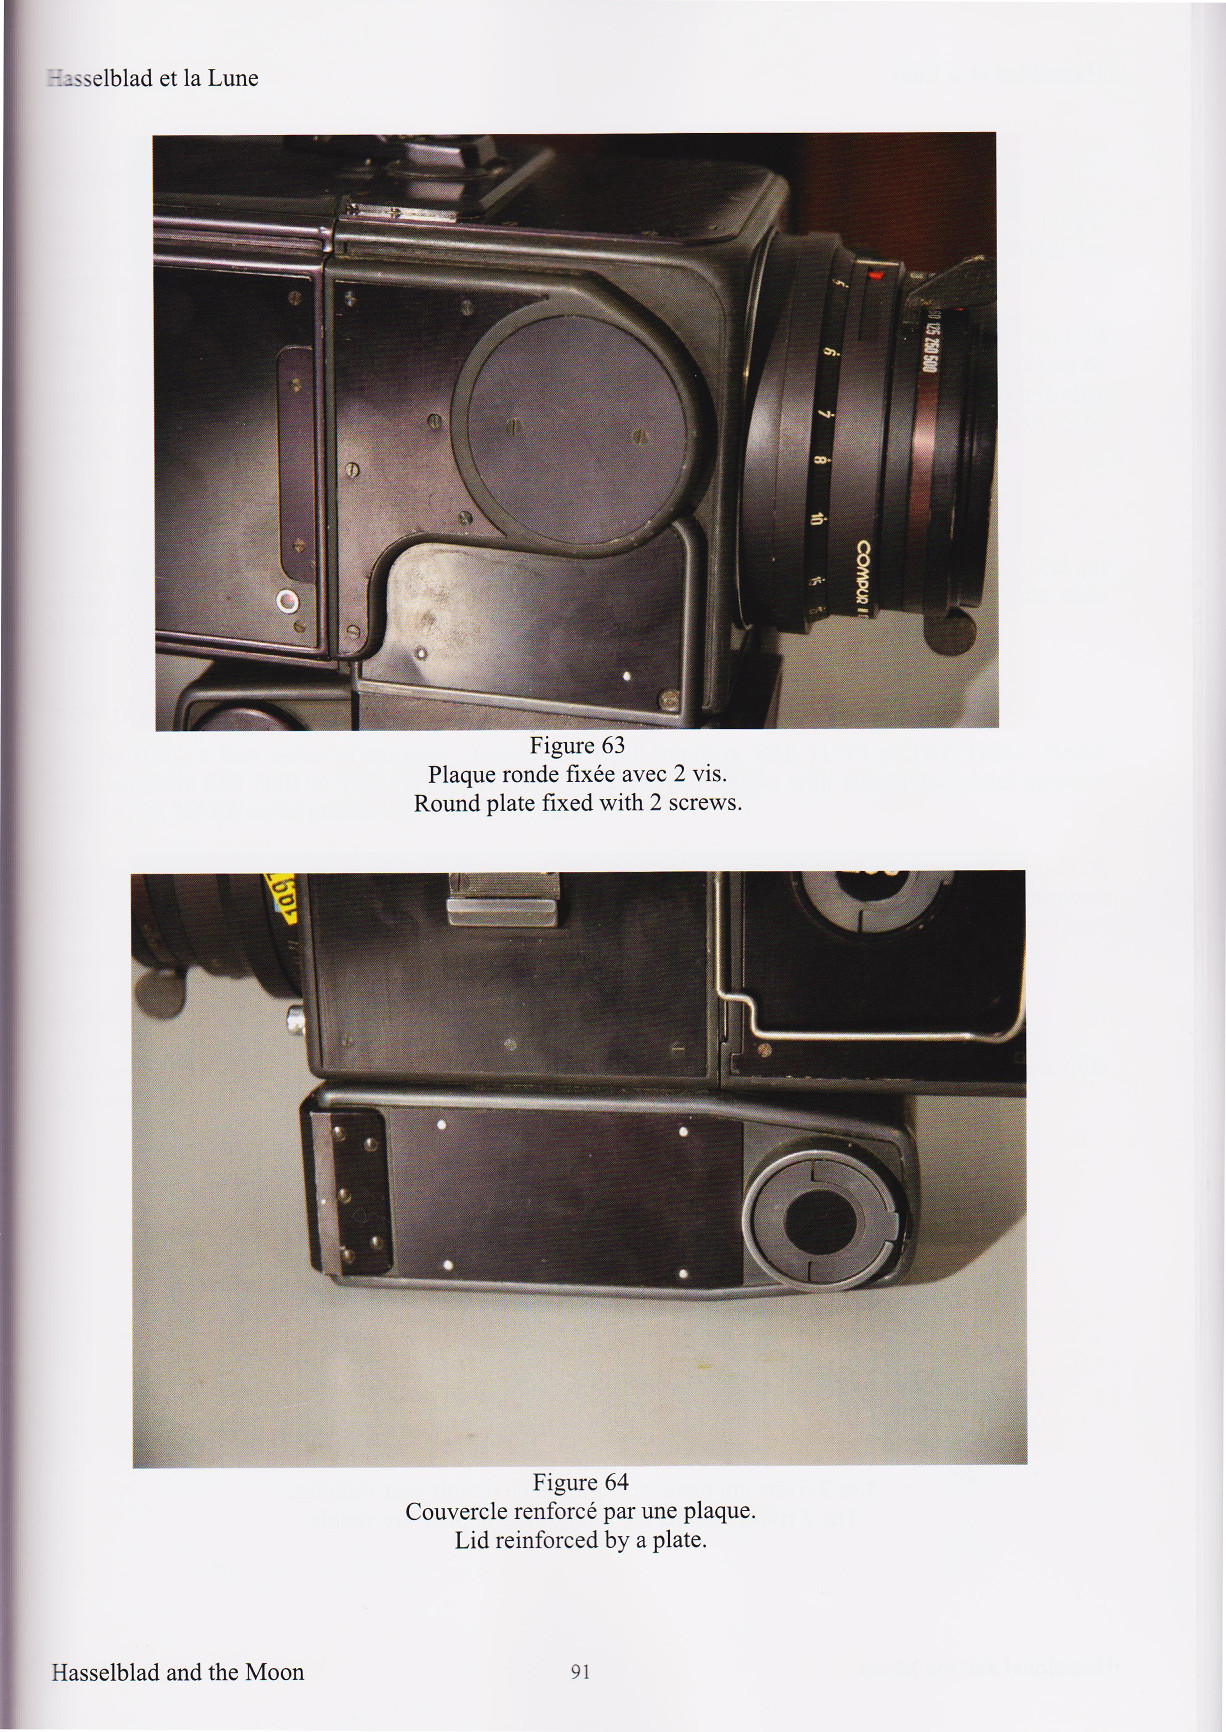 Hasselblad and the Moon - Book page 91